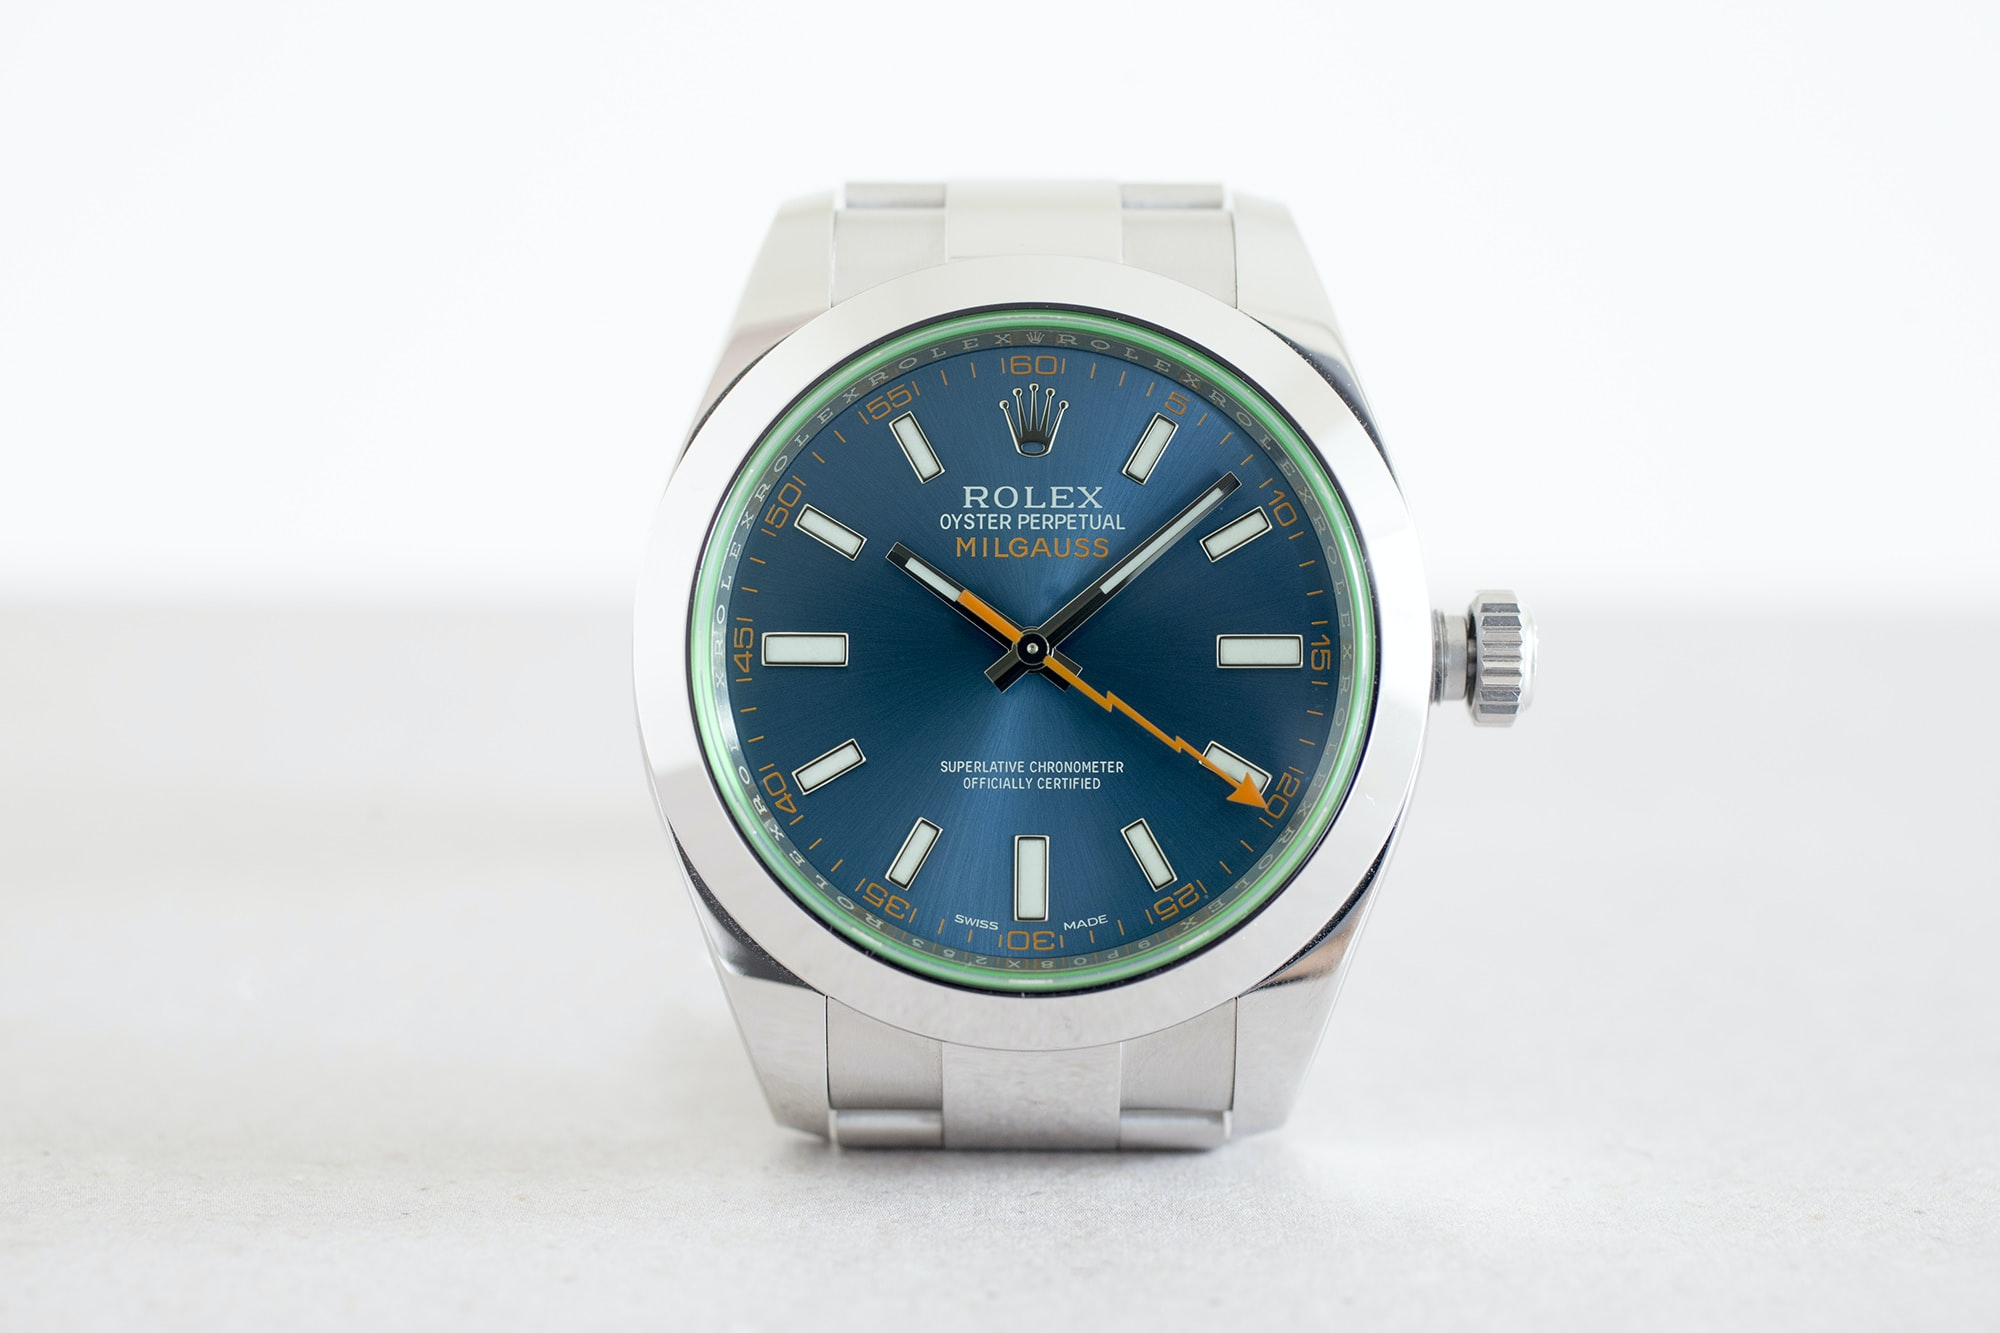 rolex milgauss z-blue In-Depth: The Rolex Milgauss Z-Blue Edition In-Depth: The Rolex Milgauss Z-Blue Edition IMG 6476